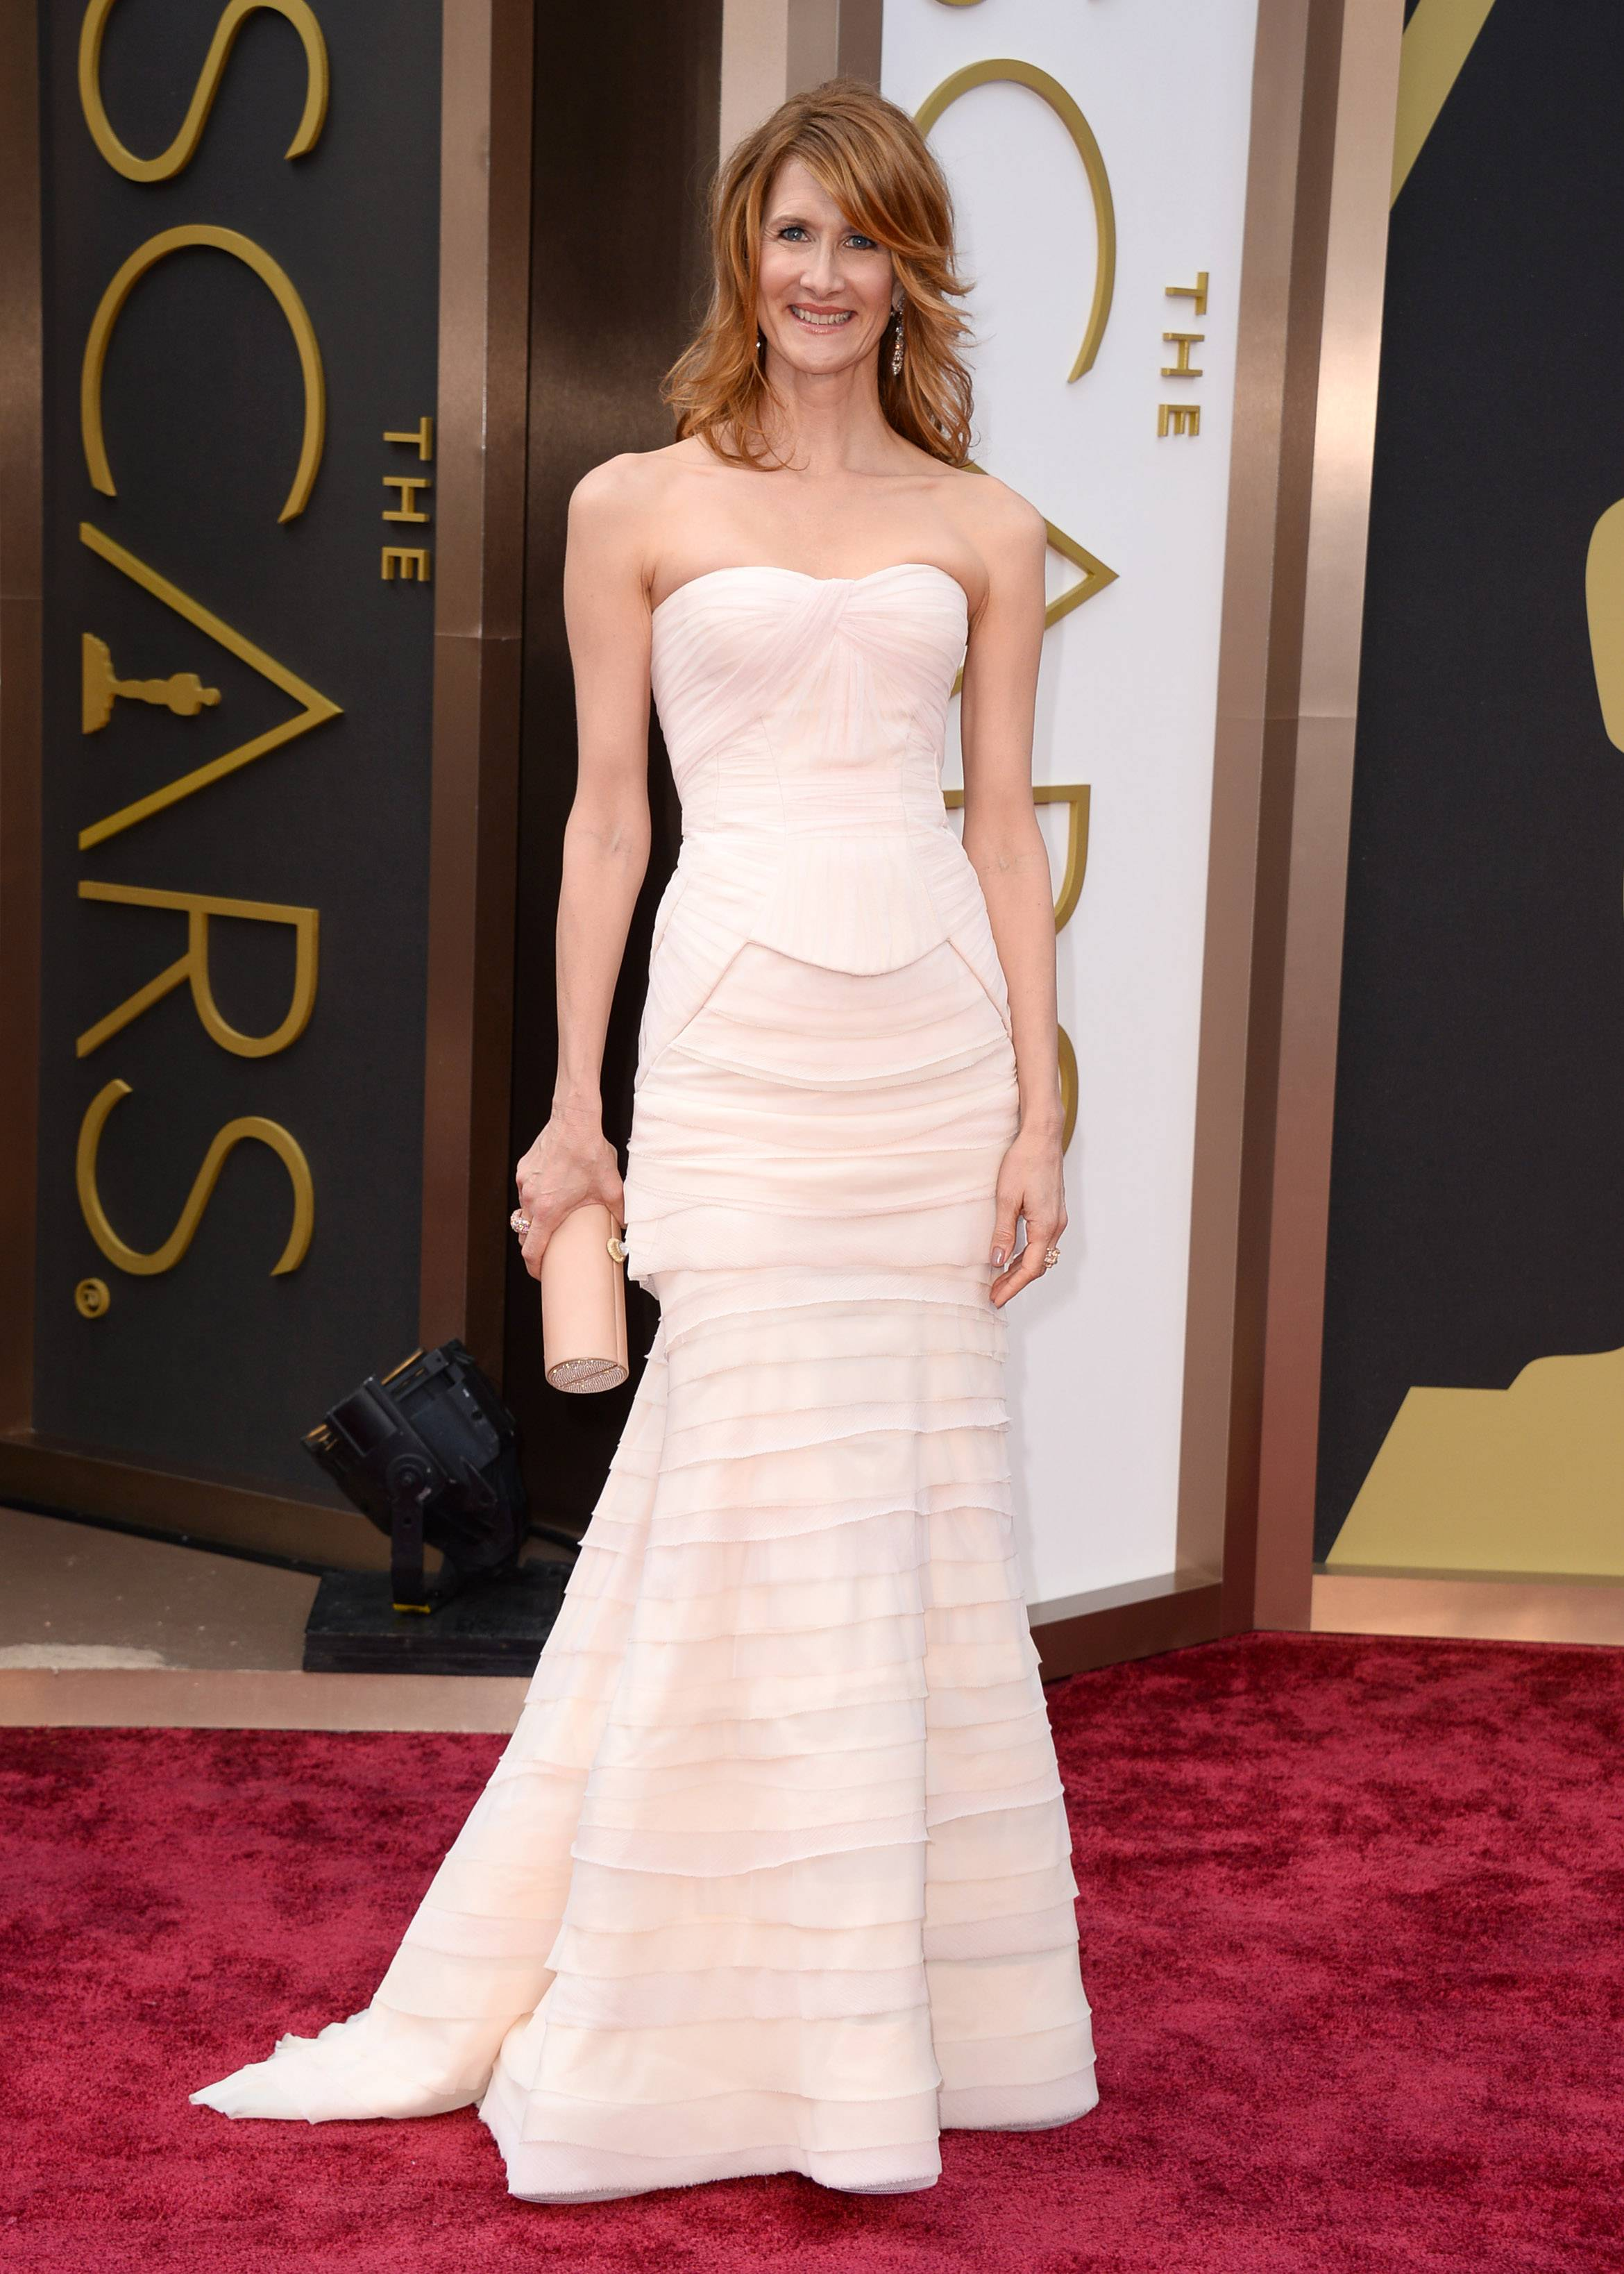 Actress Laura Dern arrives at the Oscars on Sunday in Los Angeles.